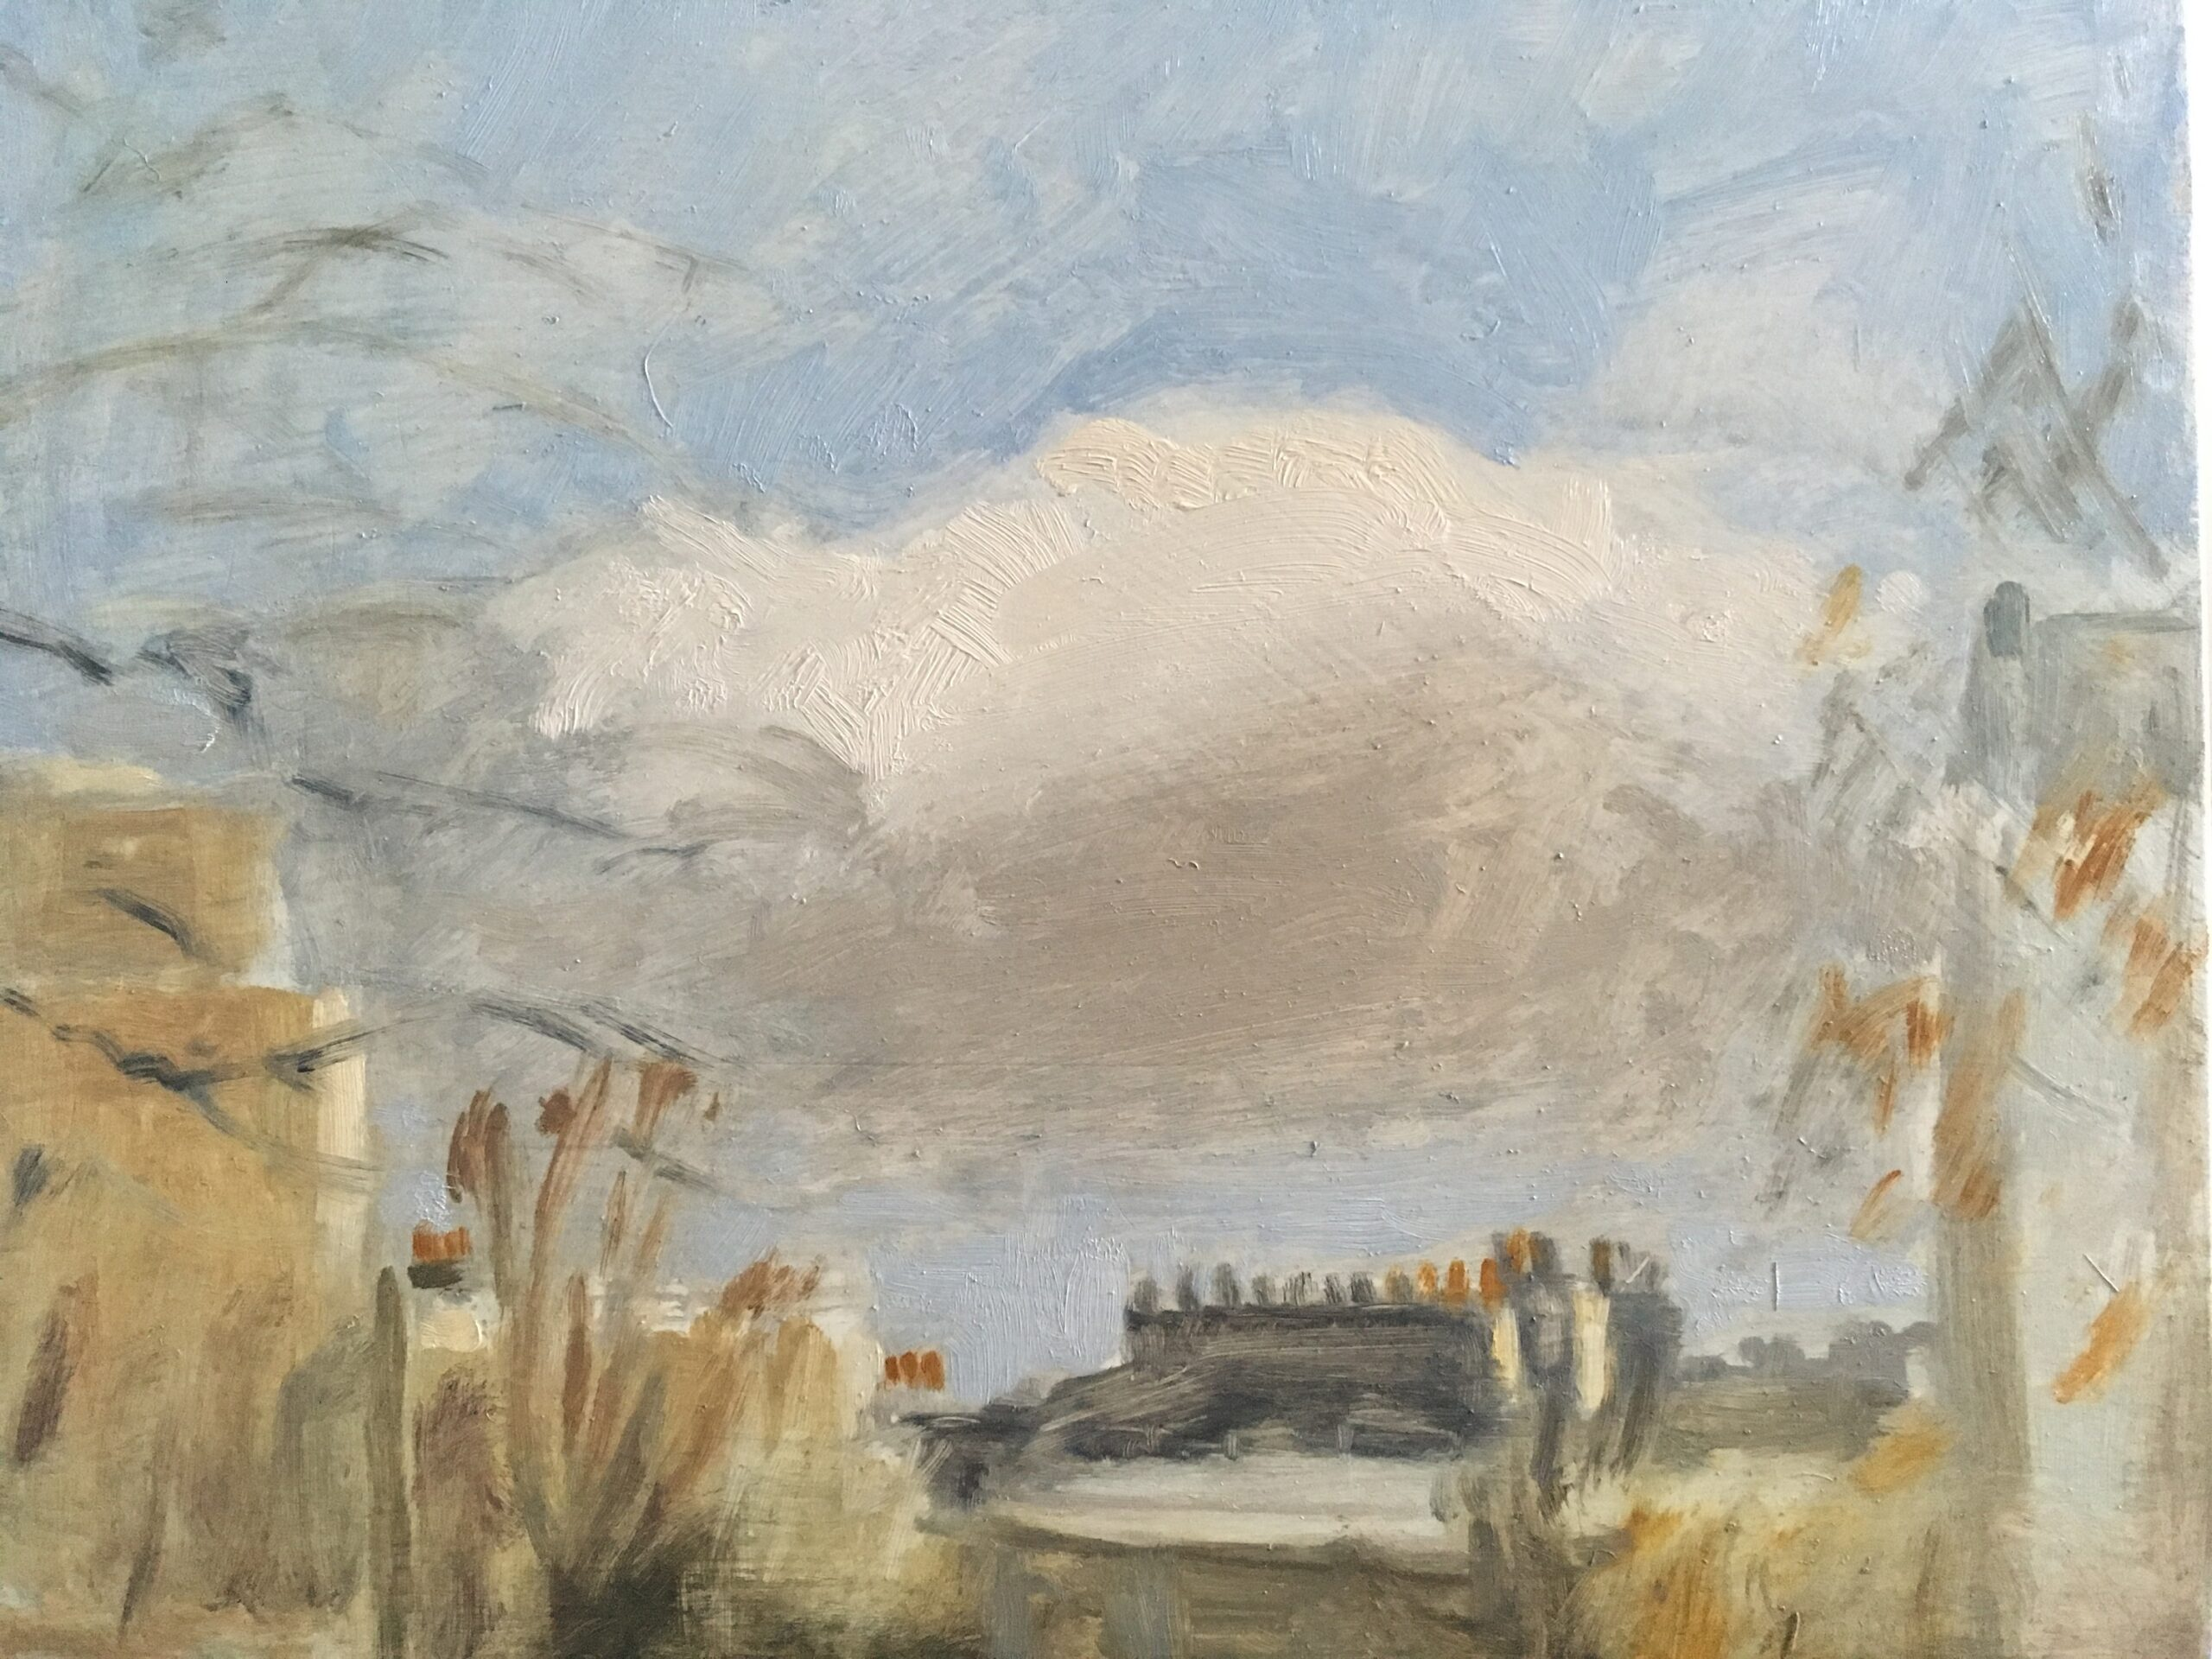 Cloud, Winter Sky, 2020 Jessica Biggs Oil on panel 20.5cm x 25.5cm